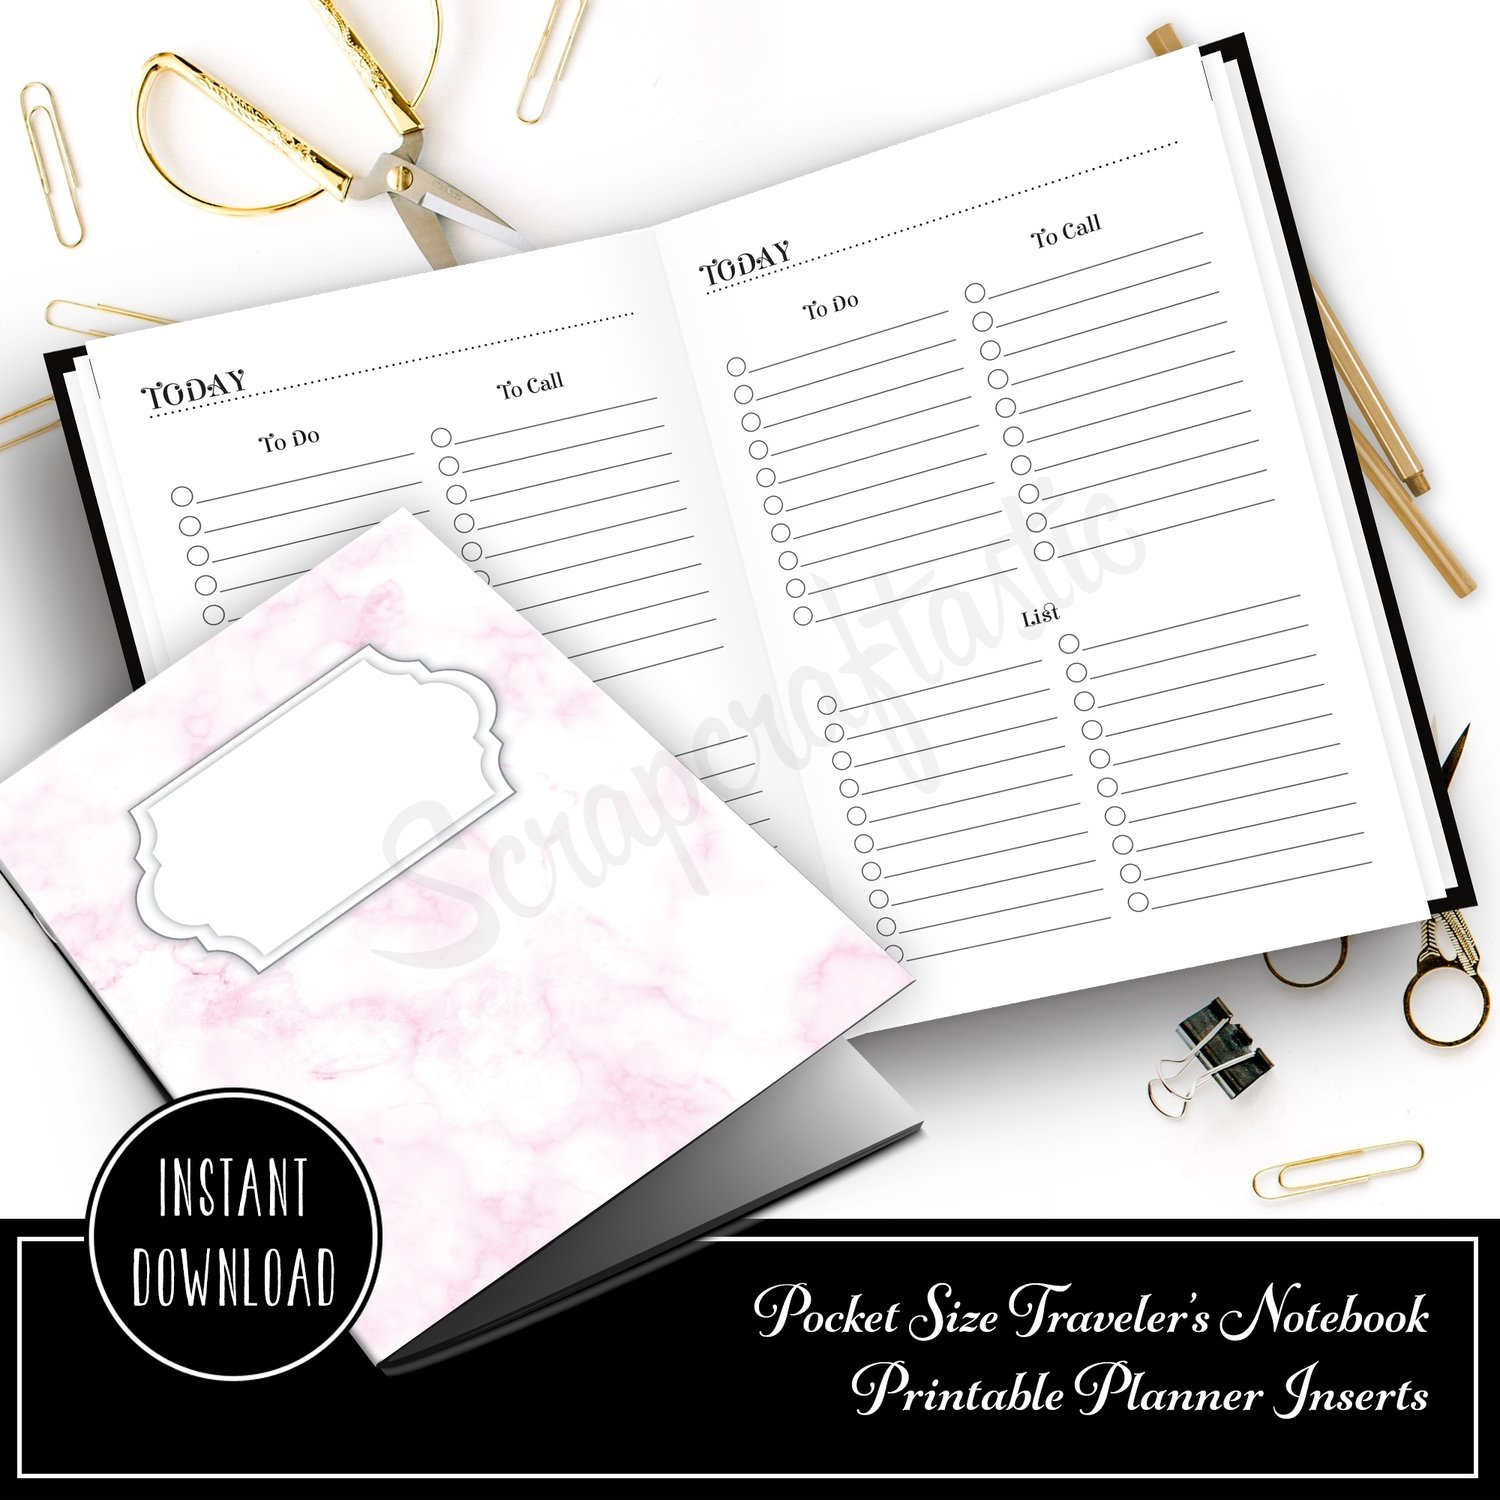 Multi List Pocket Size Traveler's Notebook Printable Planner Inserts